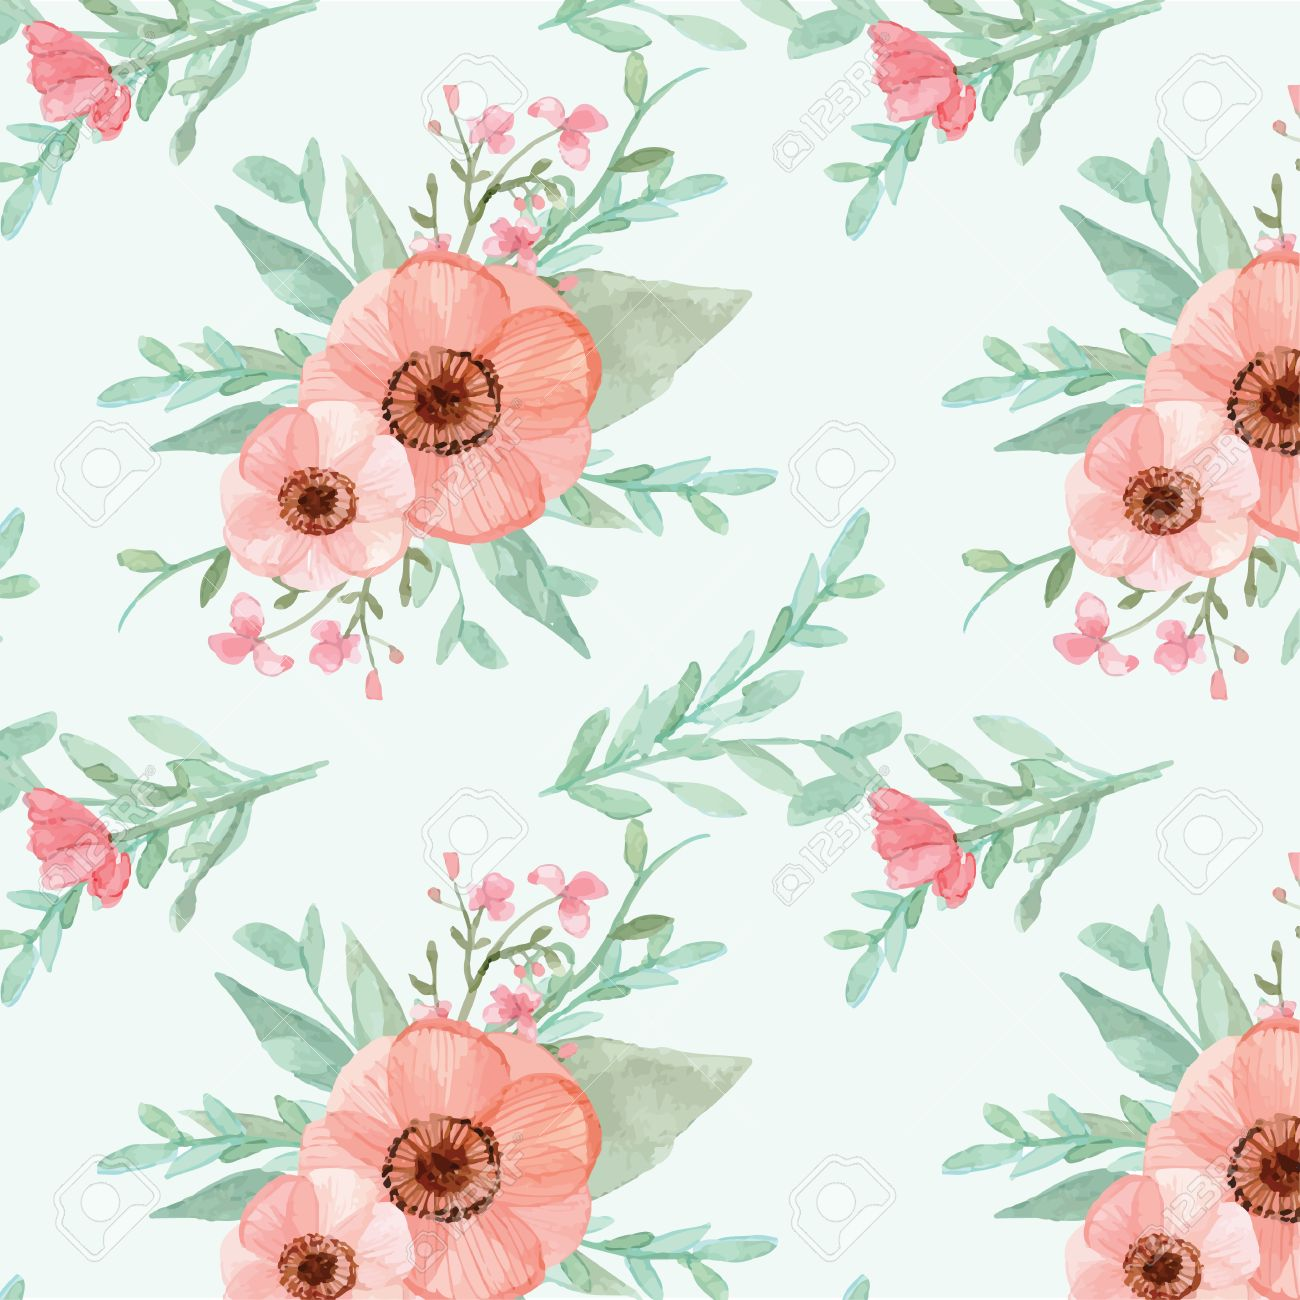 Seamless Flowers And Leaves Wallpaper Pattern Vector On Plain Background Stock